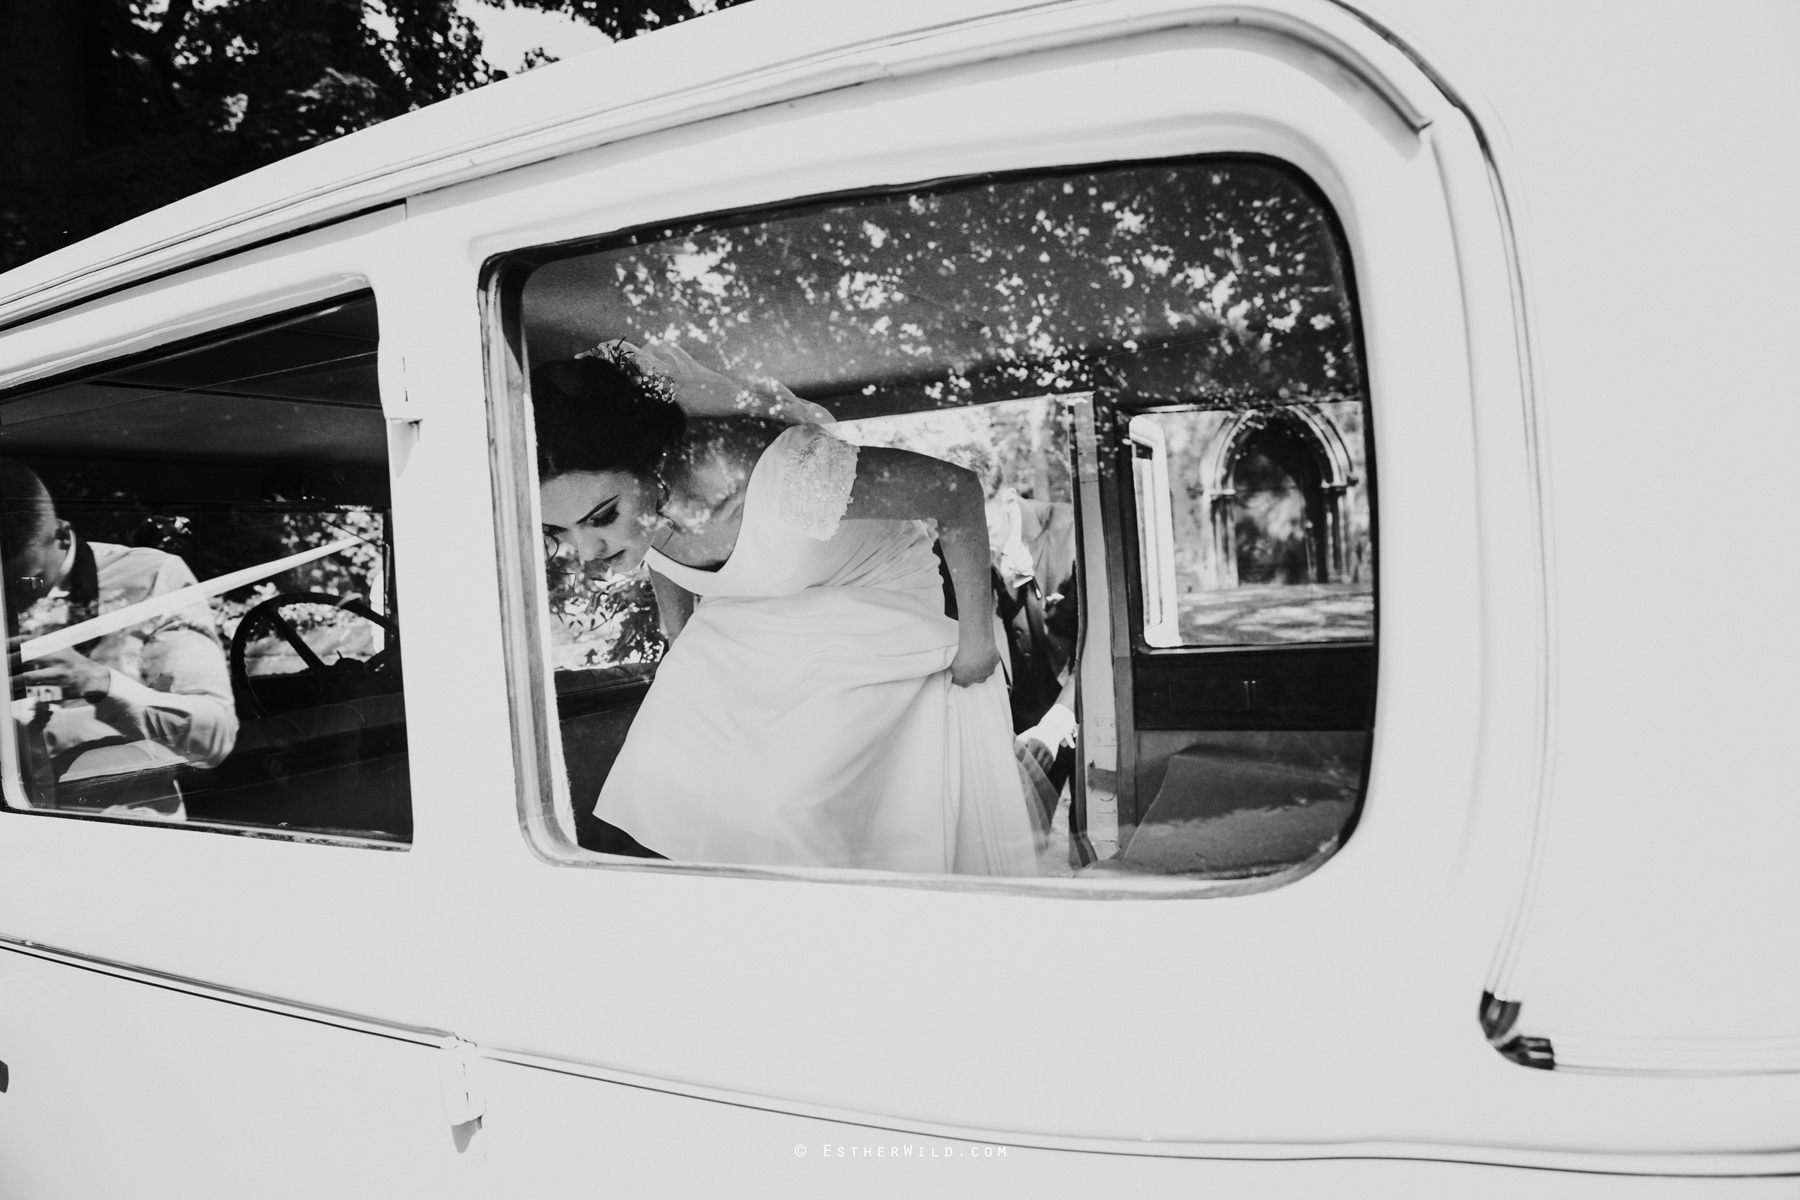 Wootton_Wedding_Copyright_Esther_Wild_Photographer_IMG_1503-2.jpg